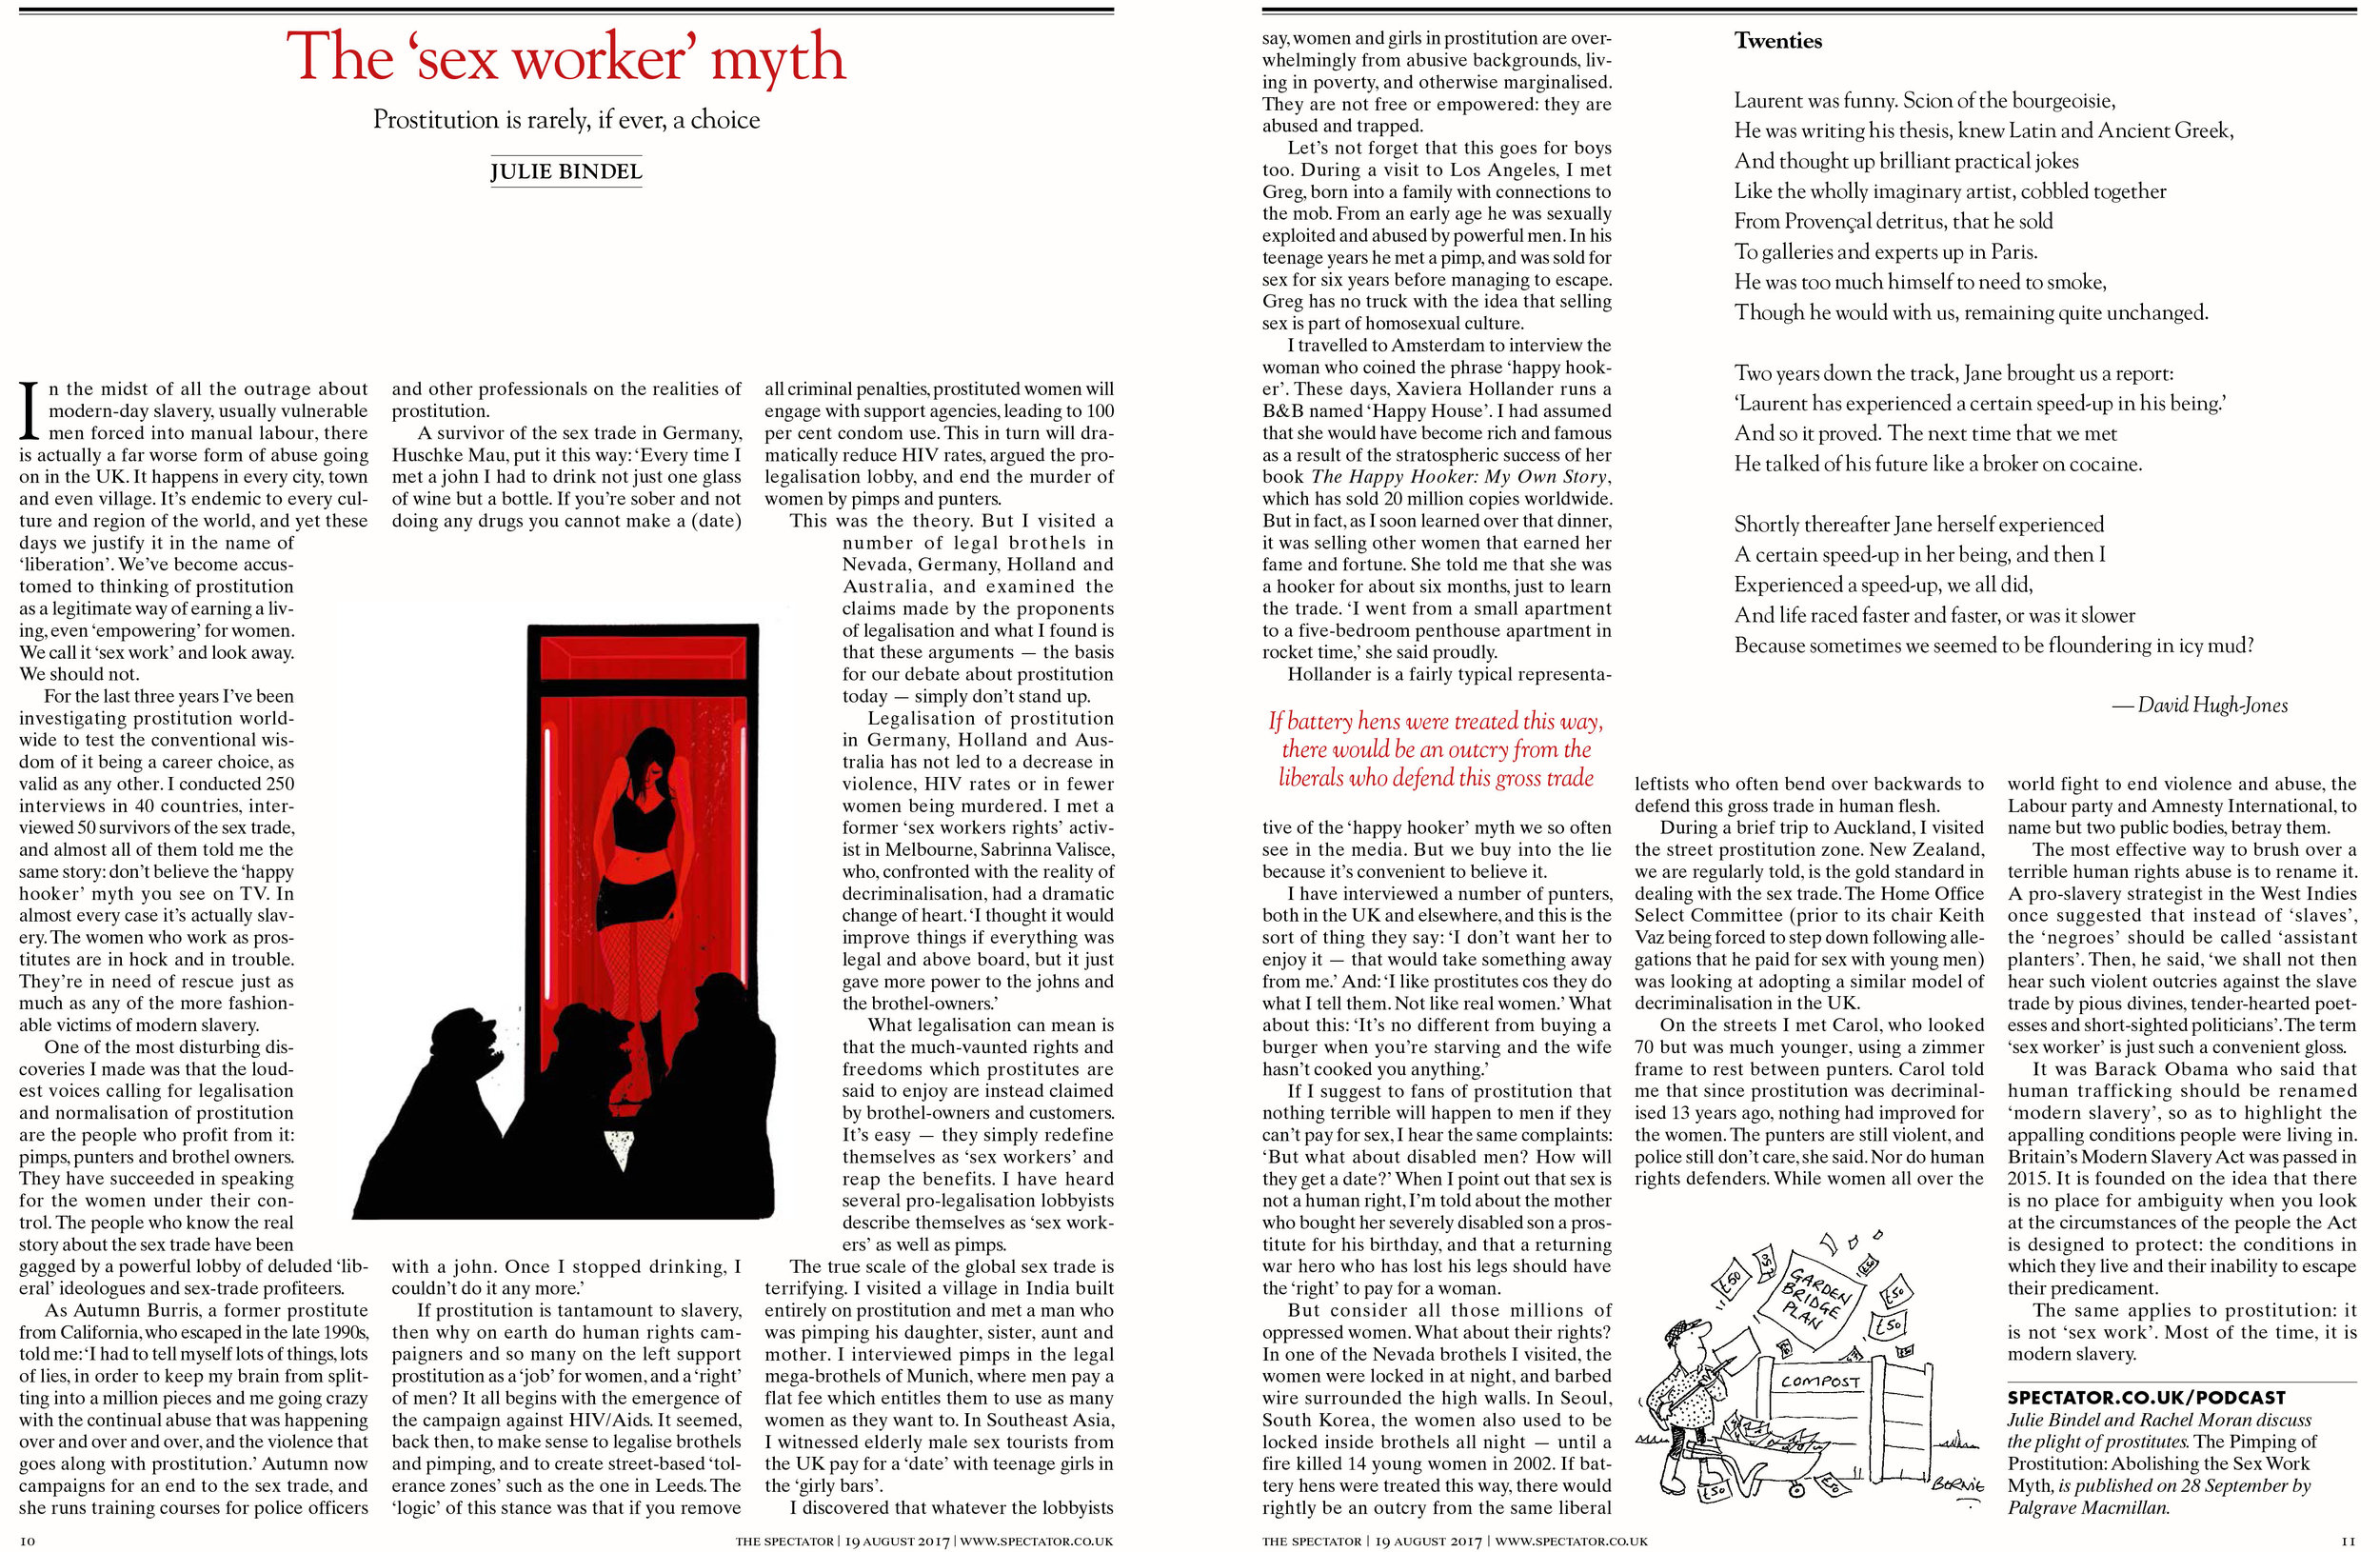 Julie Bindel Sex Worker Myth The Spectator